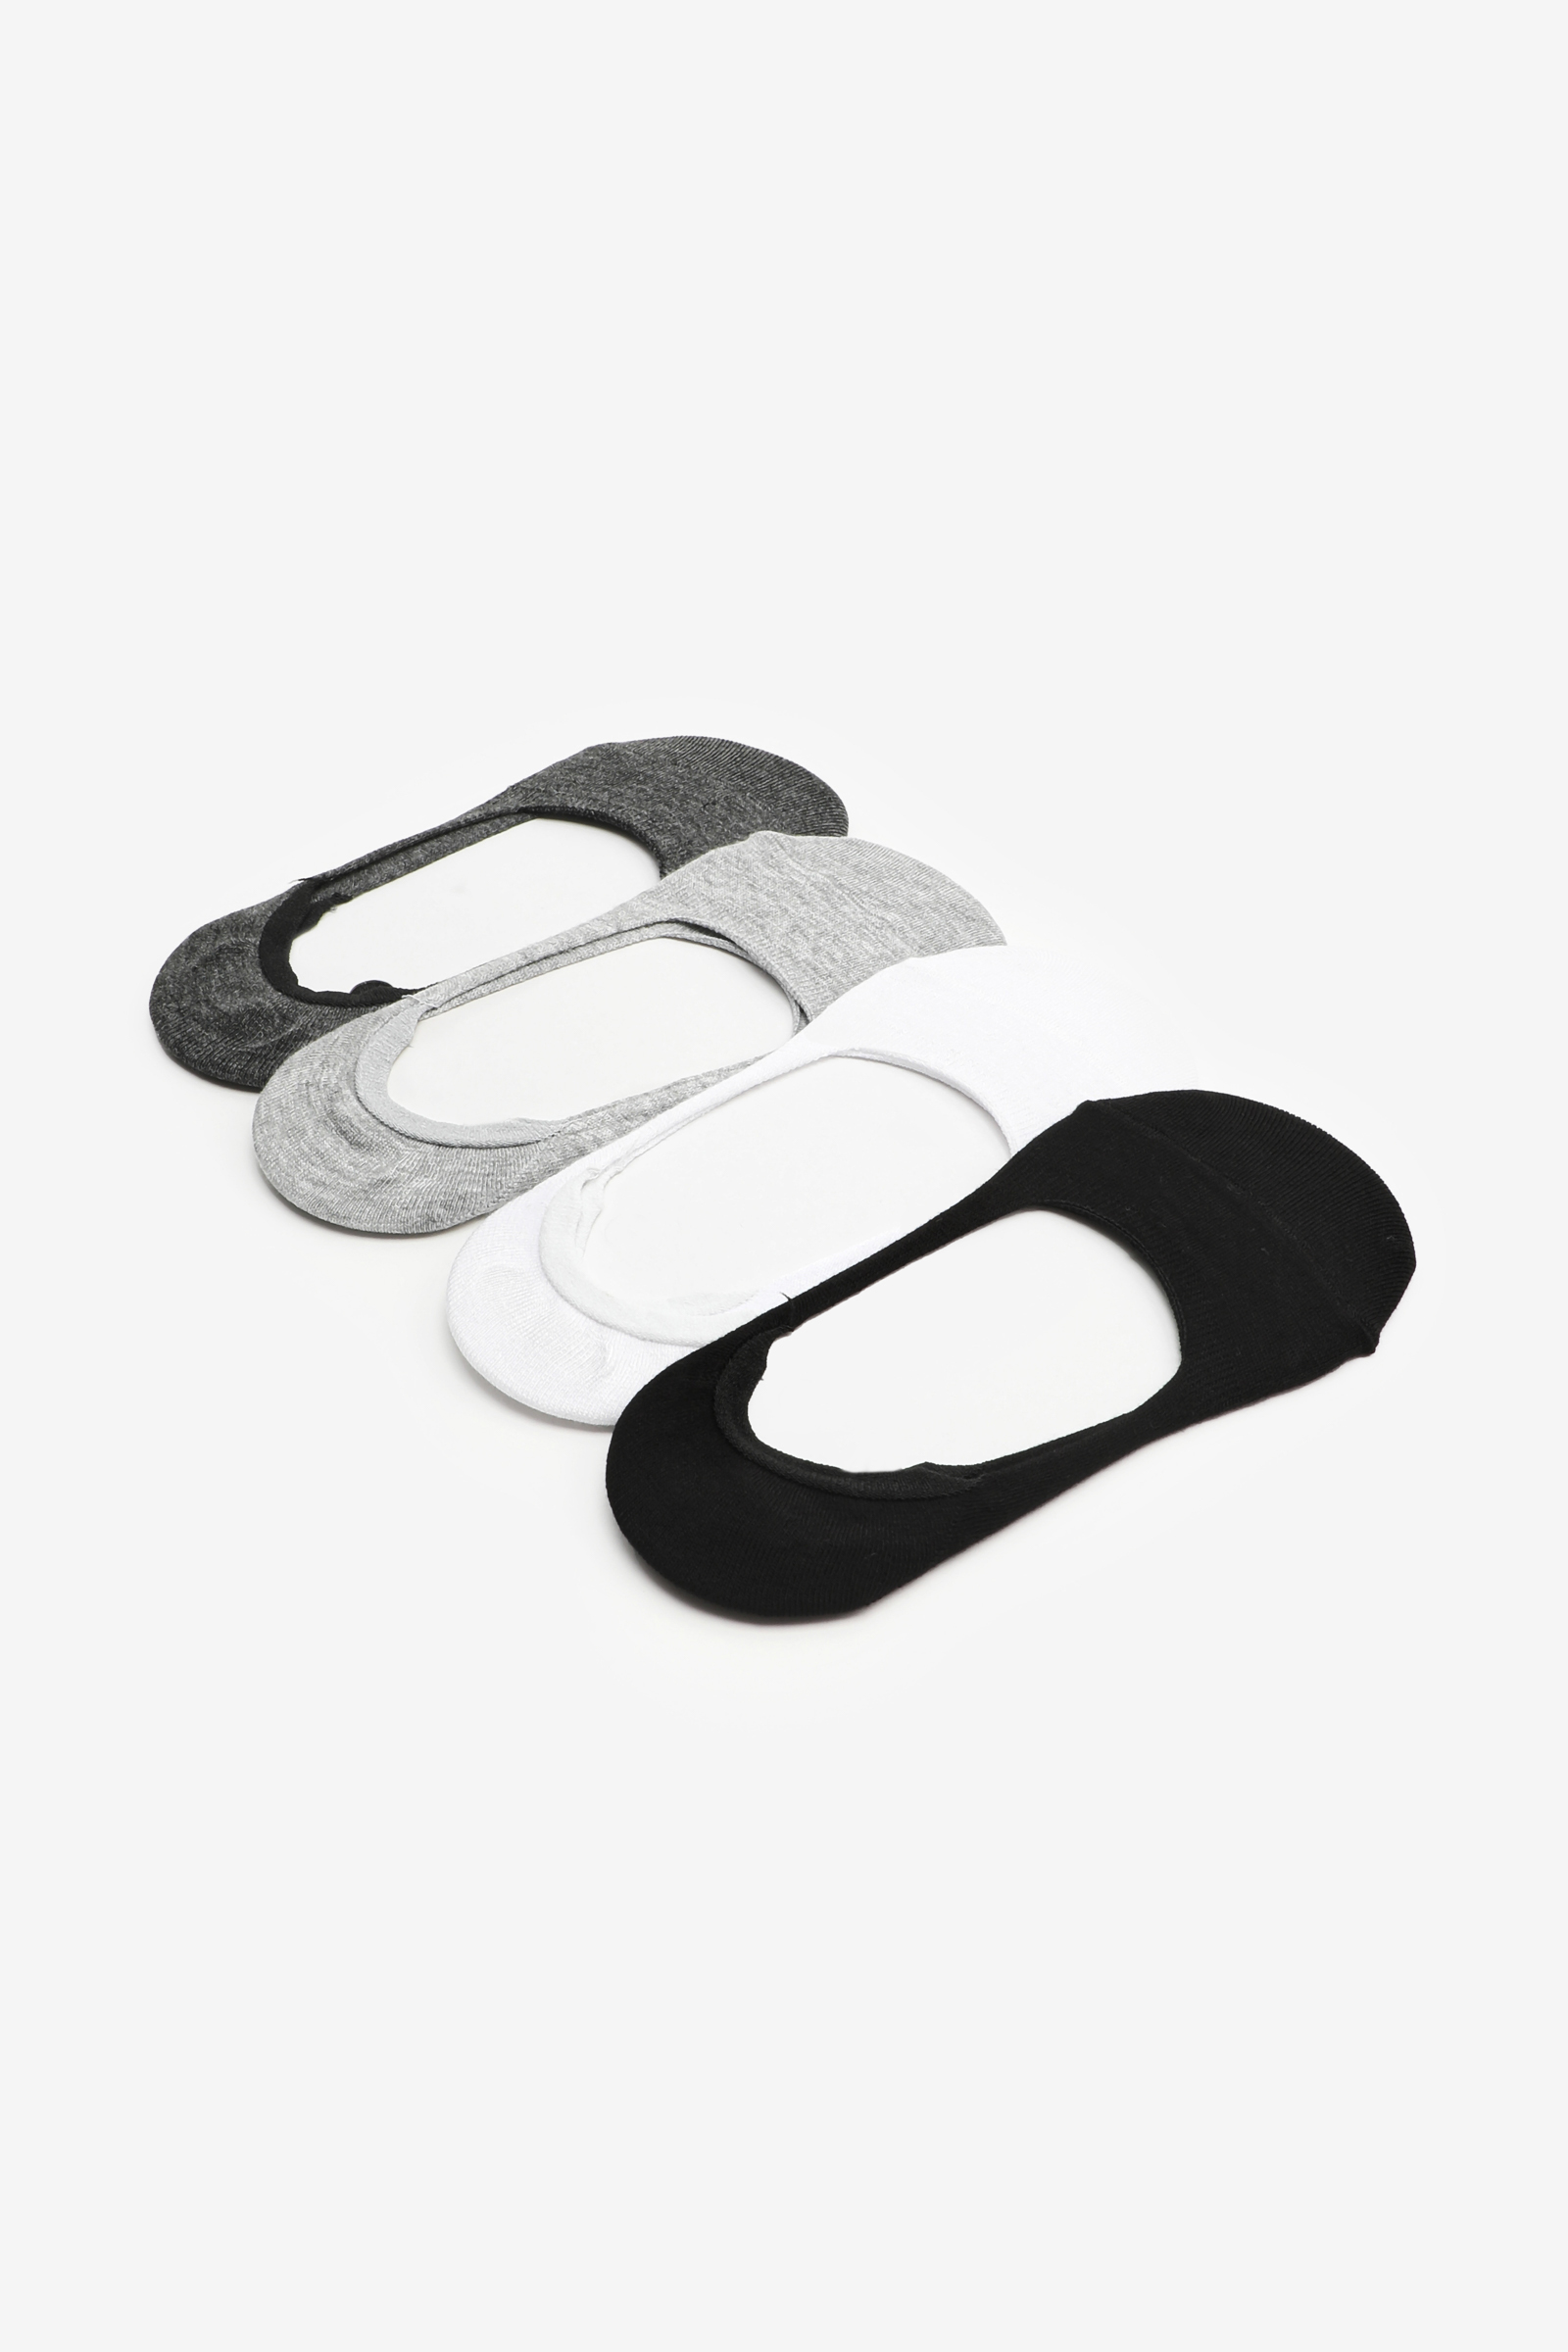 Bamboo Shoe-liners